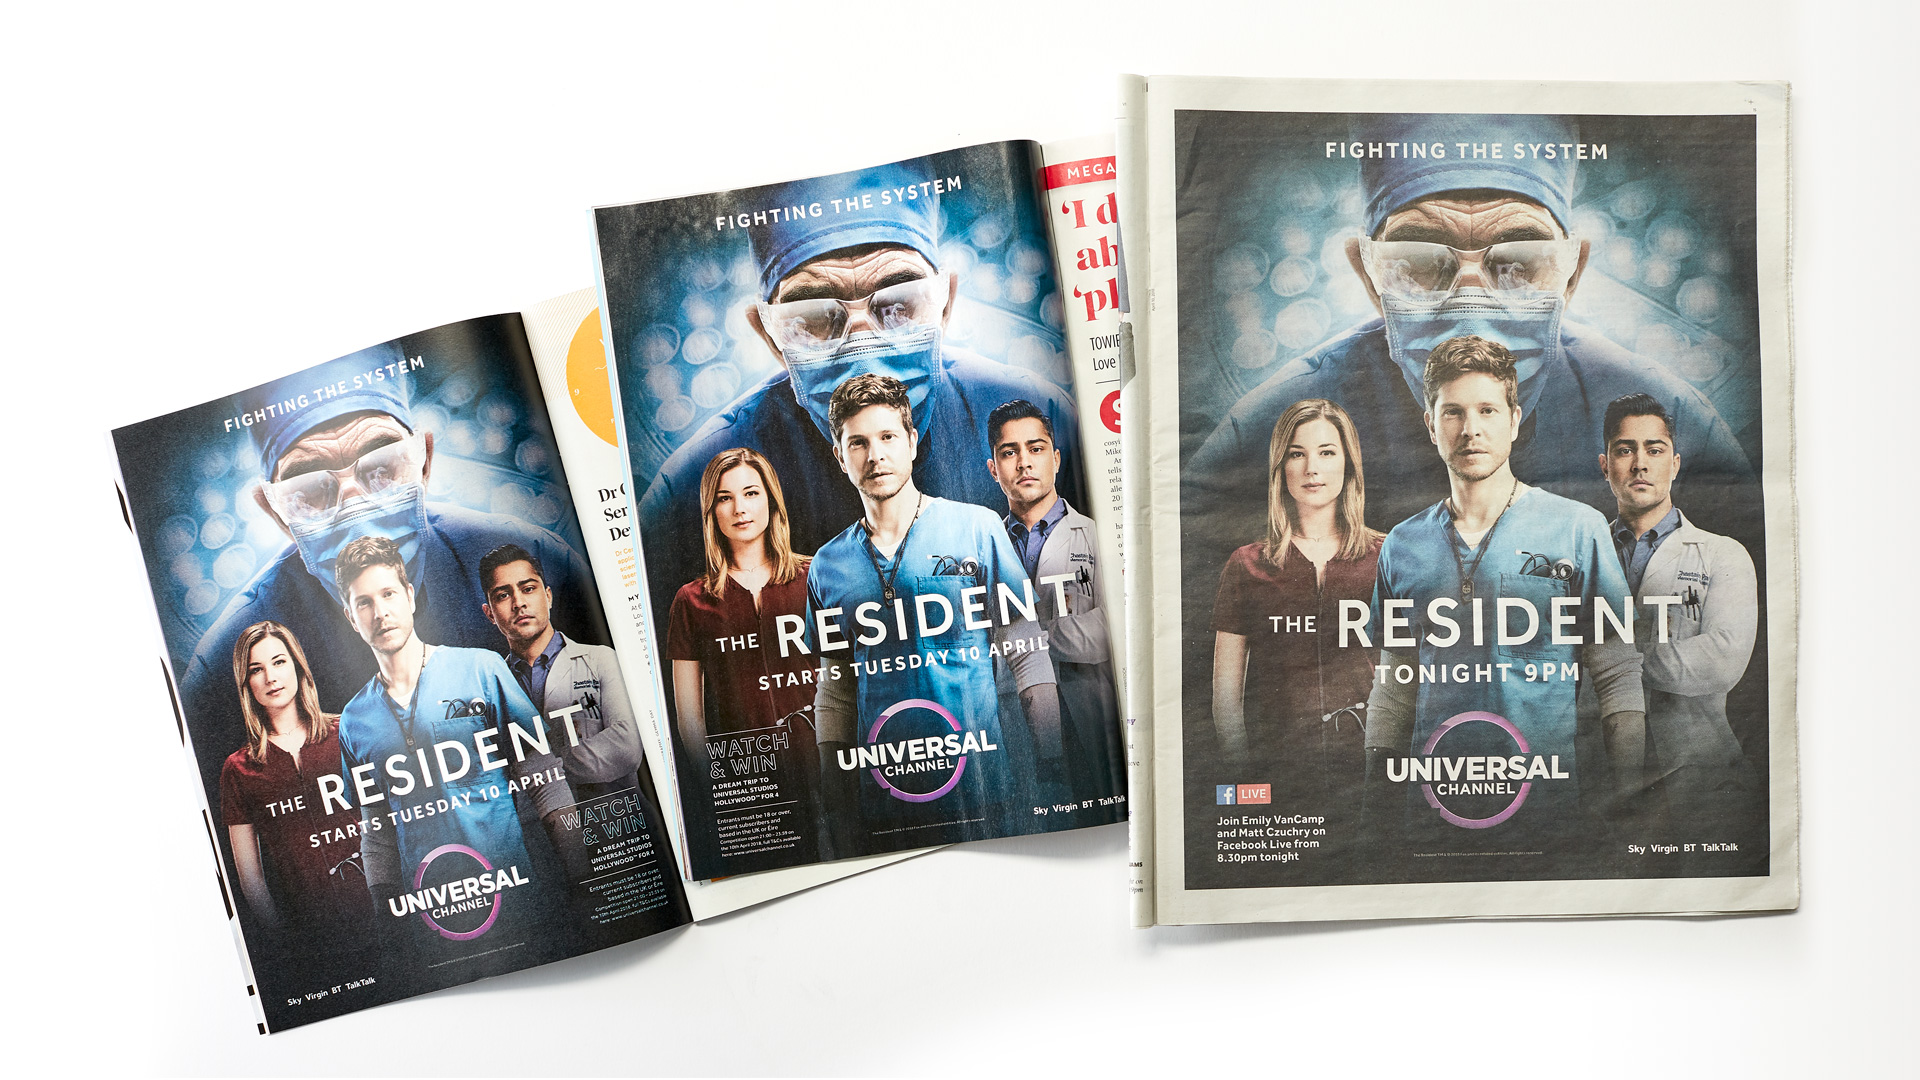 the-resident-repro-press-ad-nbc-universal